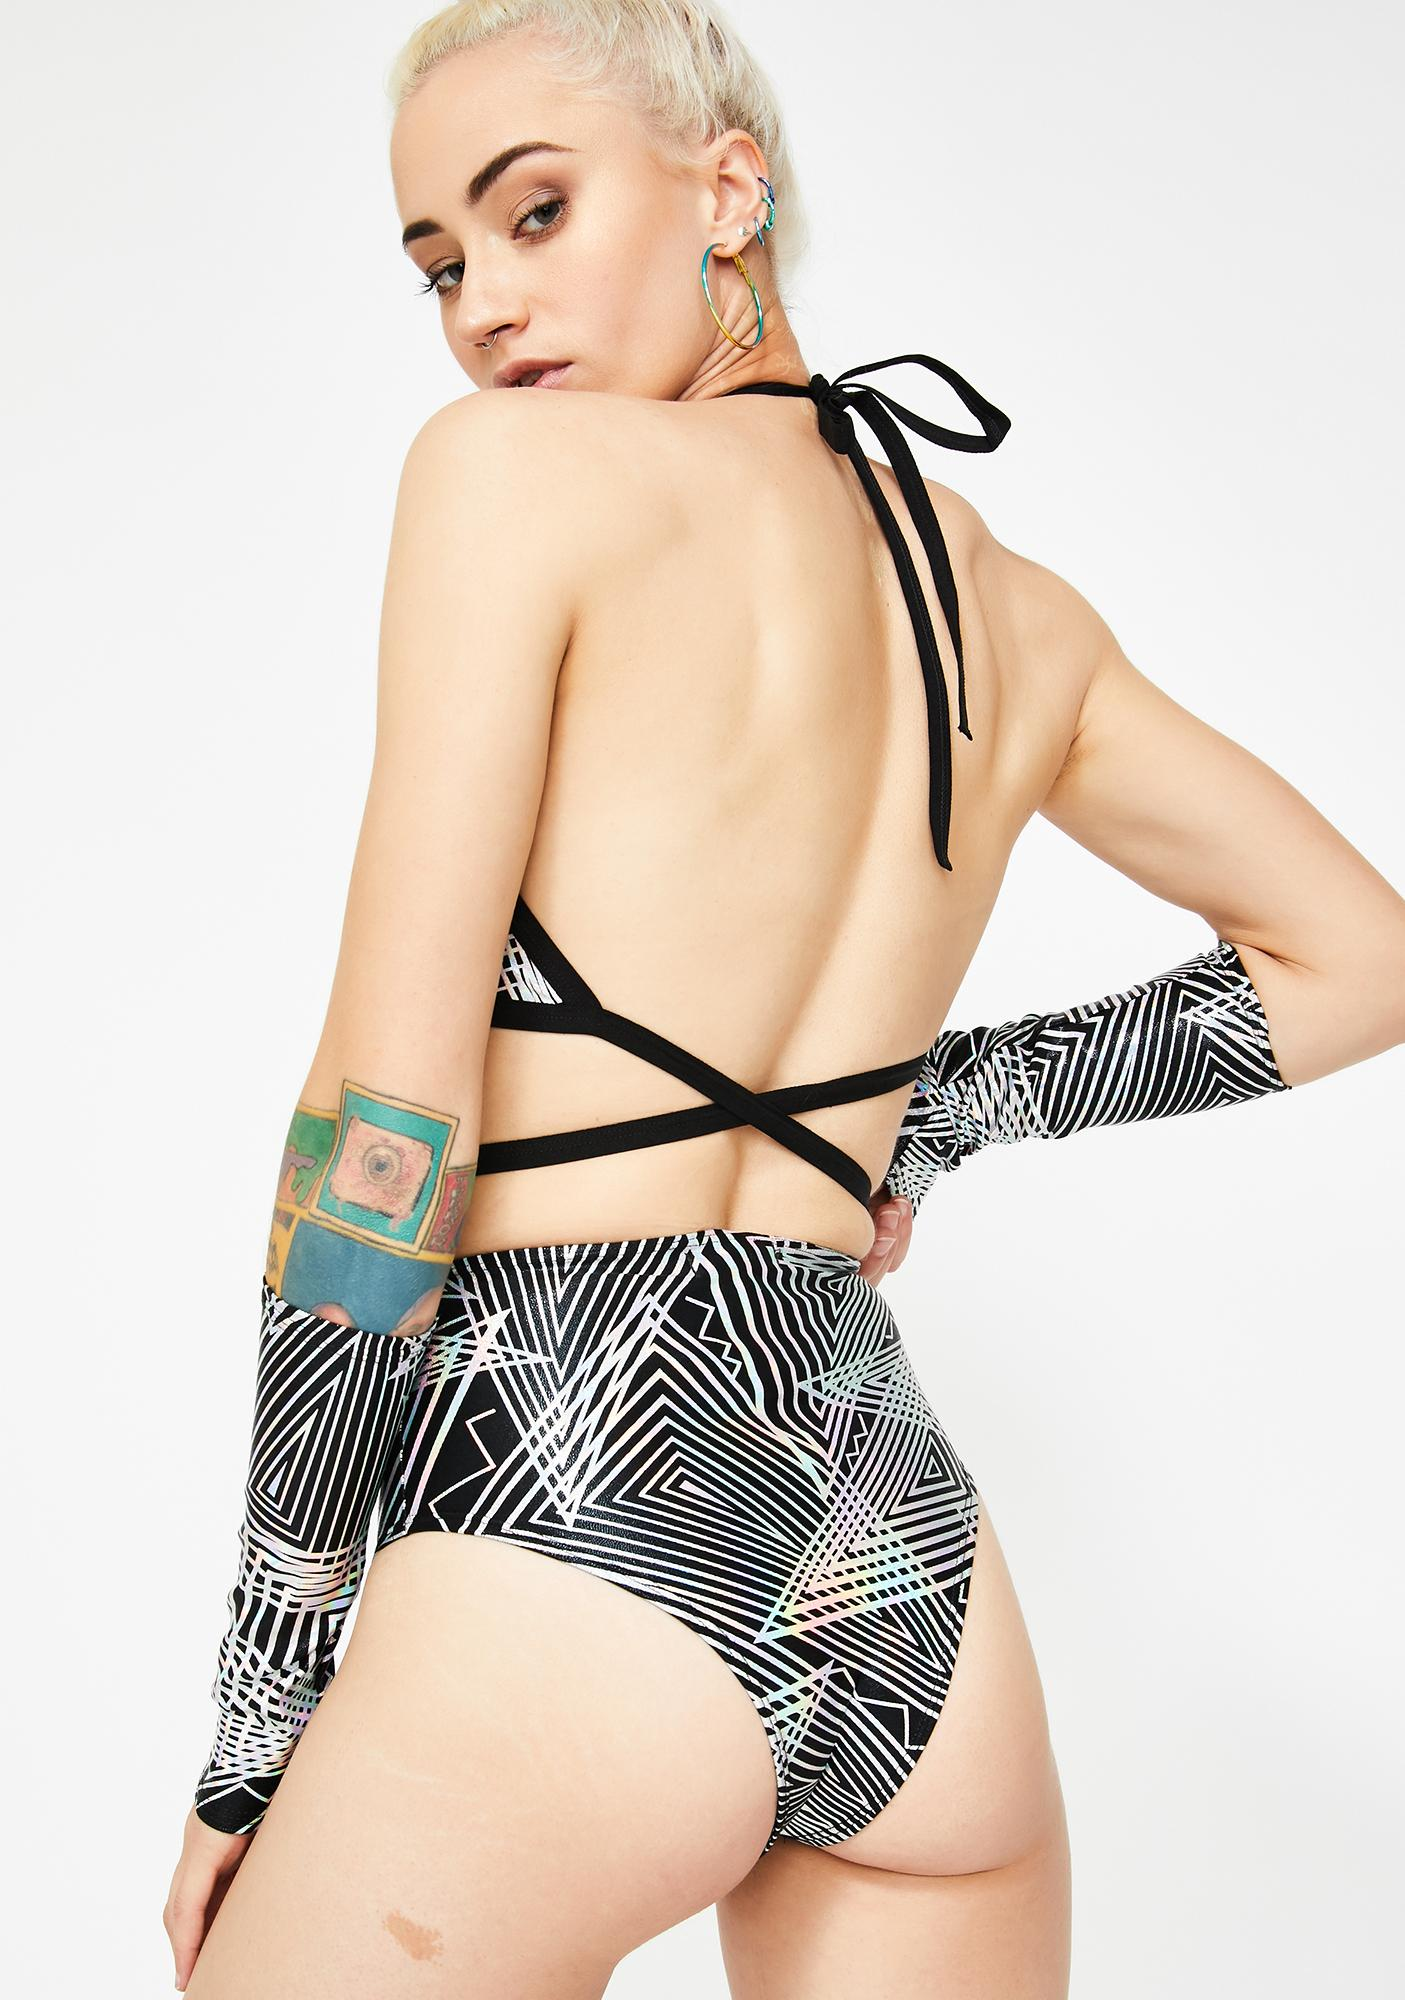 The Lyte Couture Tantric High Waist Shorts